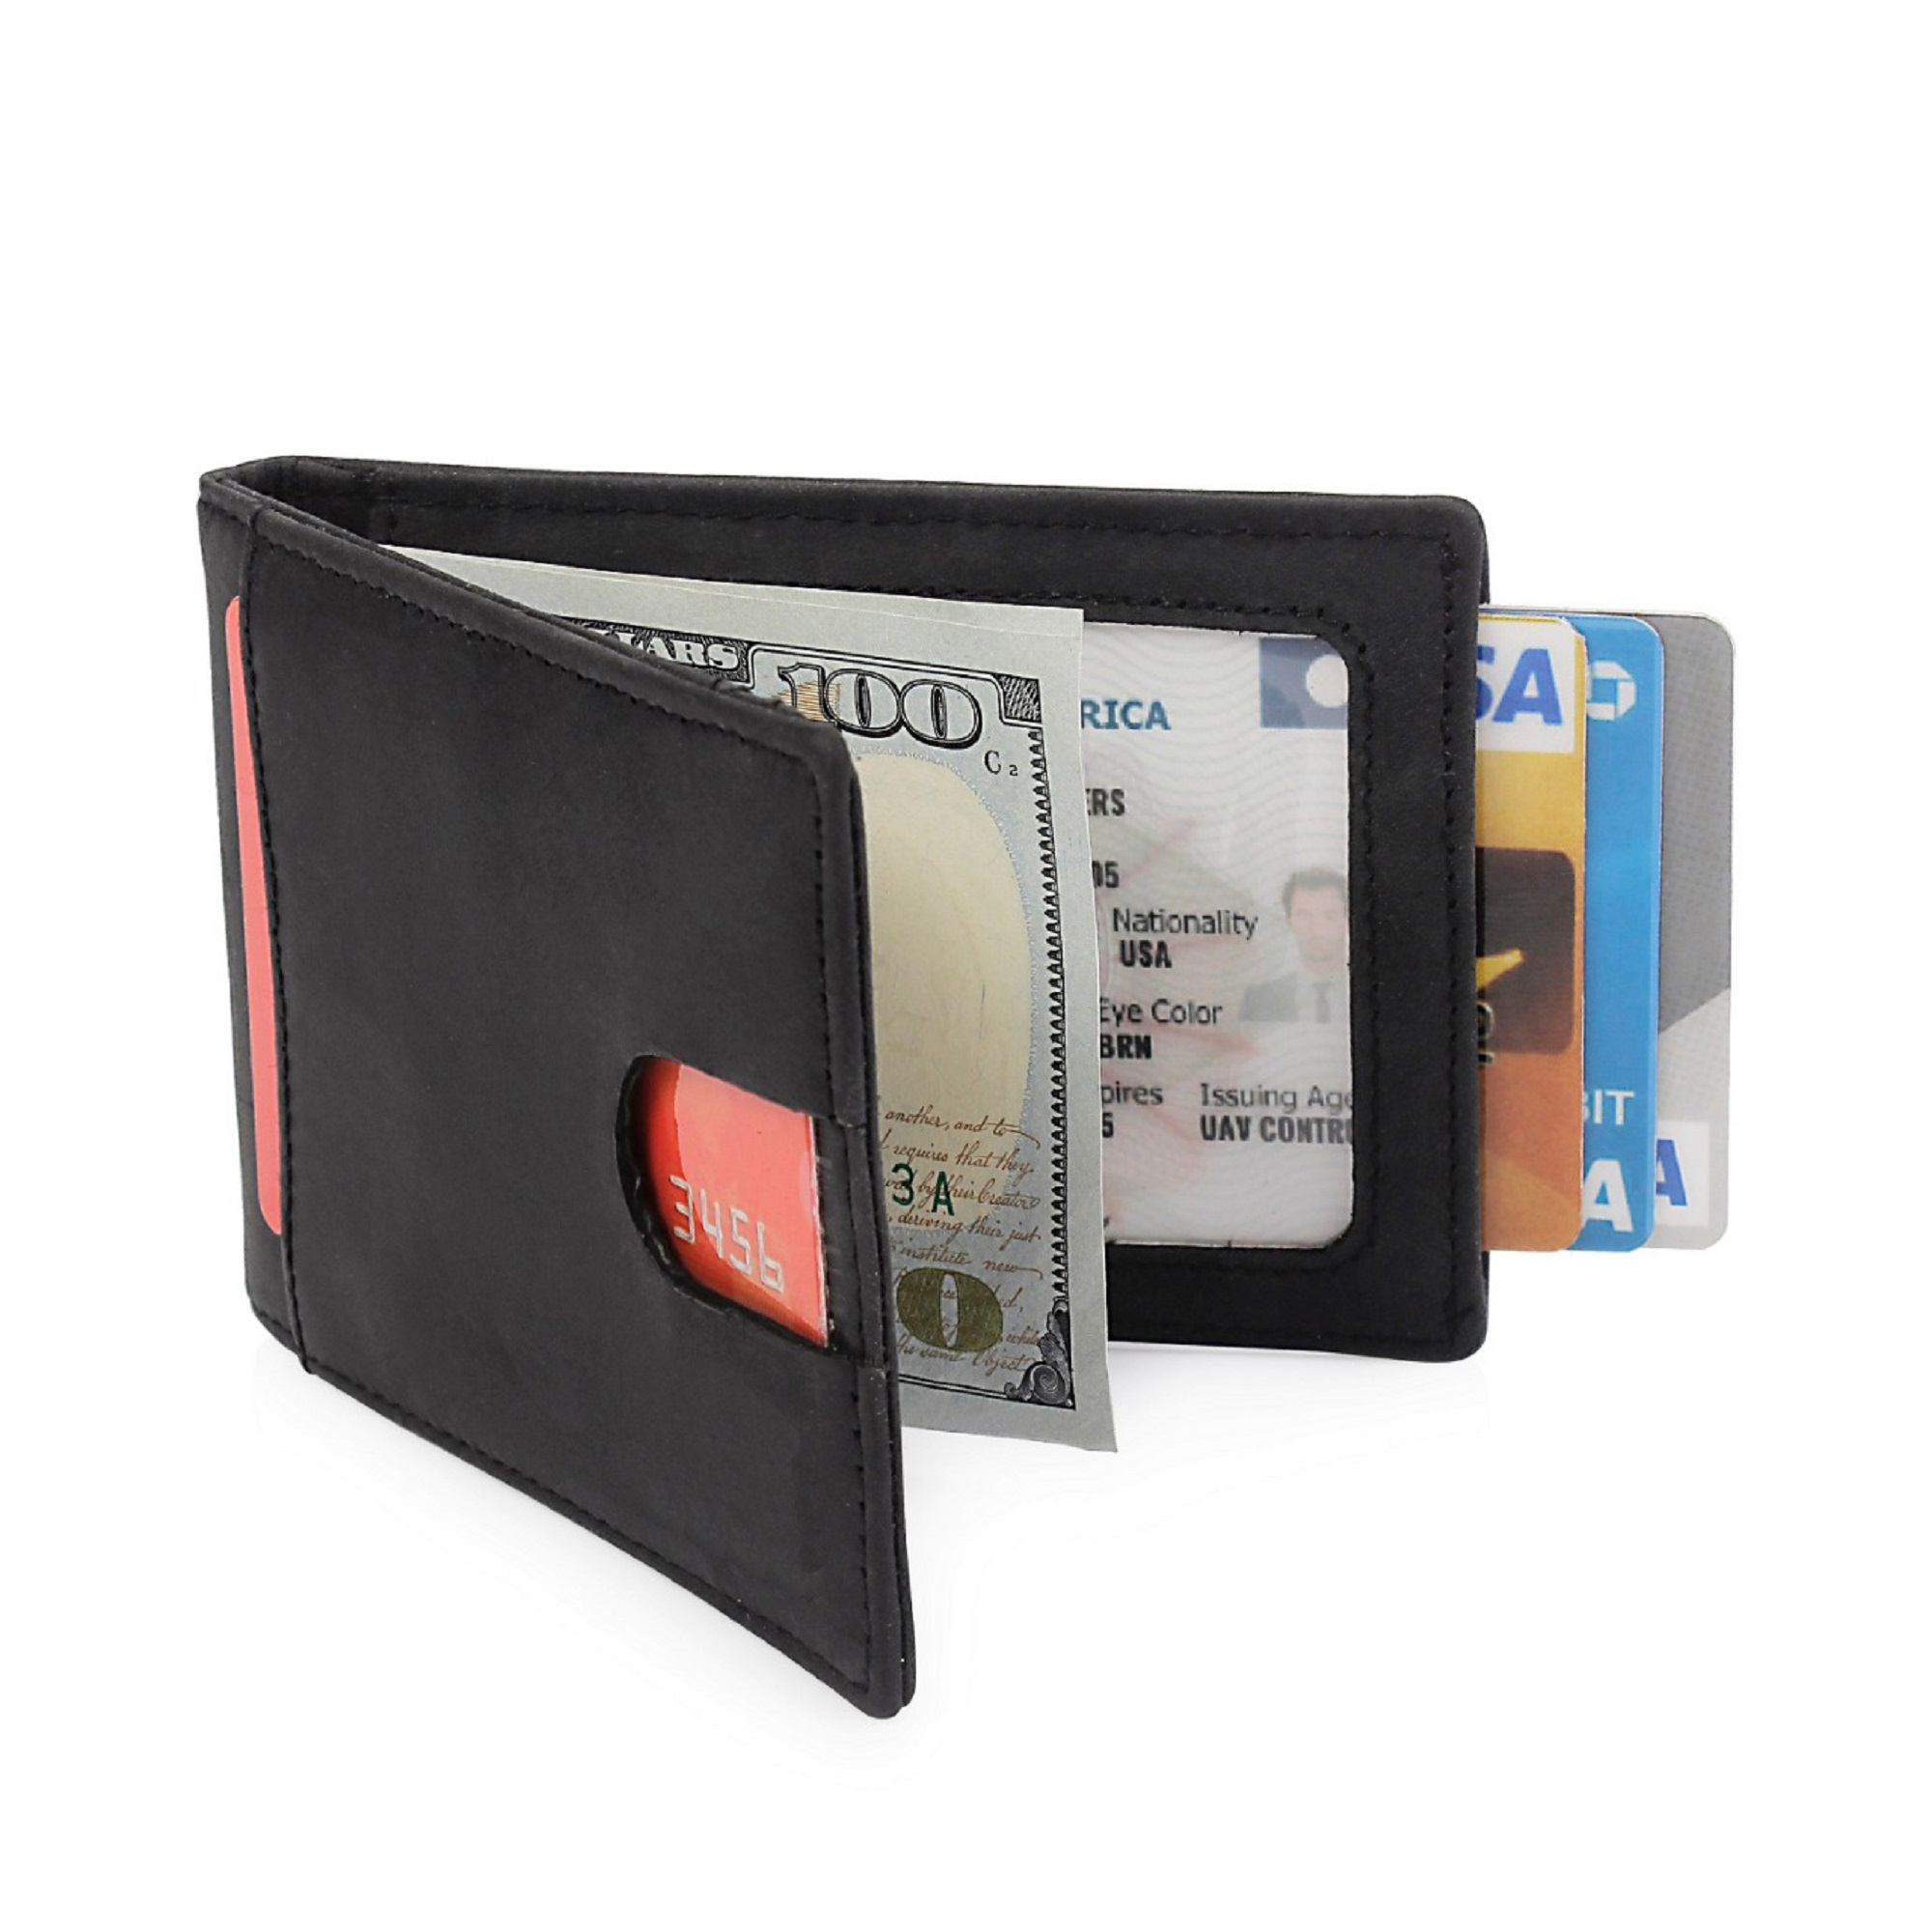 Leather Money Clip Wallet Manufacturers In Marseille, Money Clip Wallet Suppliers In Marseille, Money Clip Wallet Wholesalers In Marseille, Money Clip Wallet Traders In Marseille